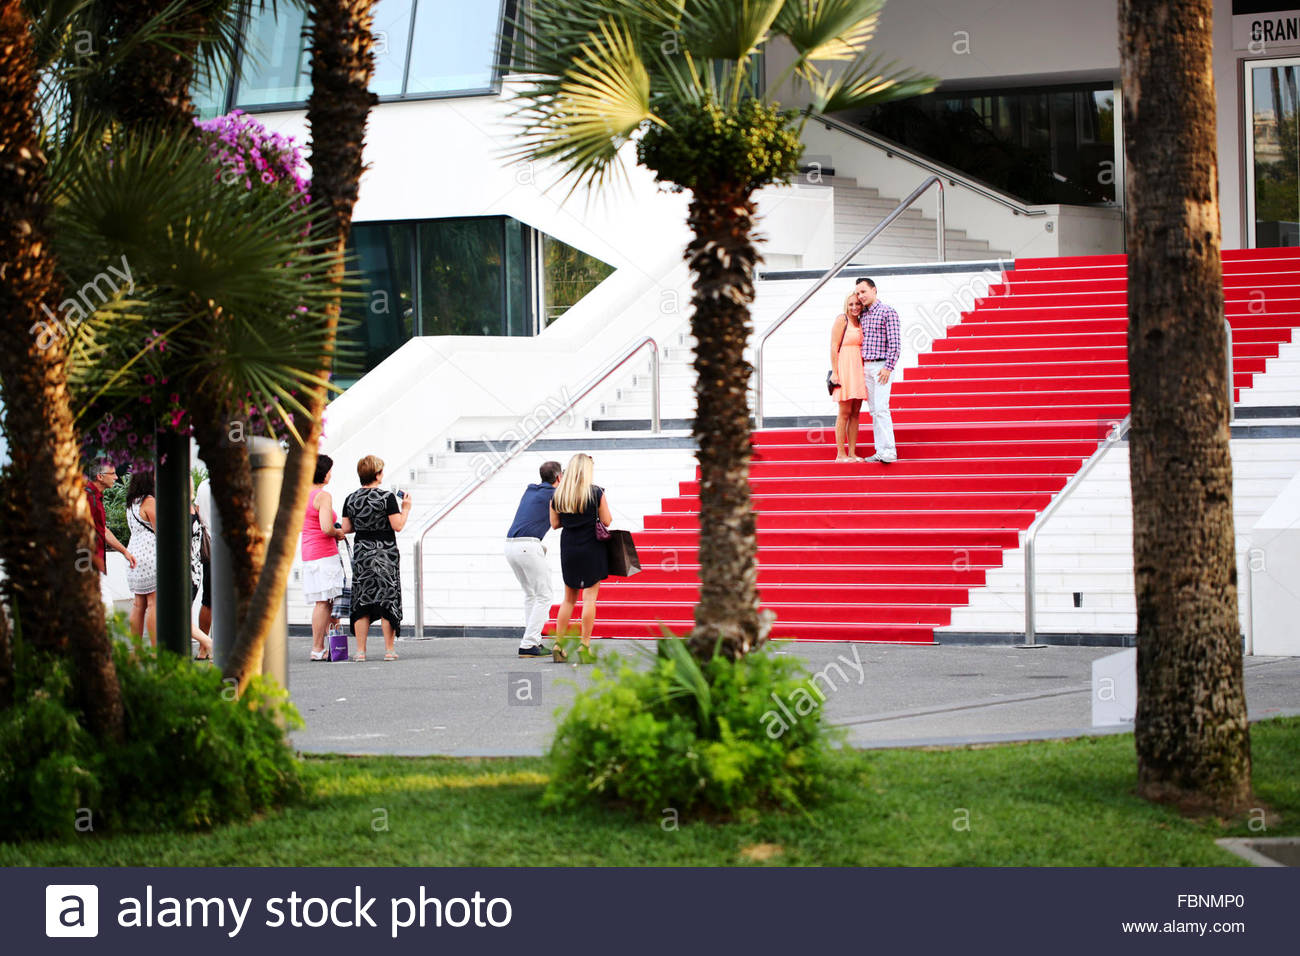 A couple of tourists pose on the red carpet outside of the Palais des Festivals in Cannes, France  whist their friends - Stock Image